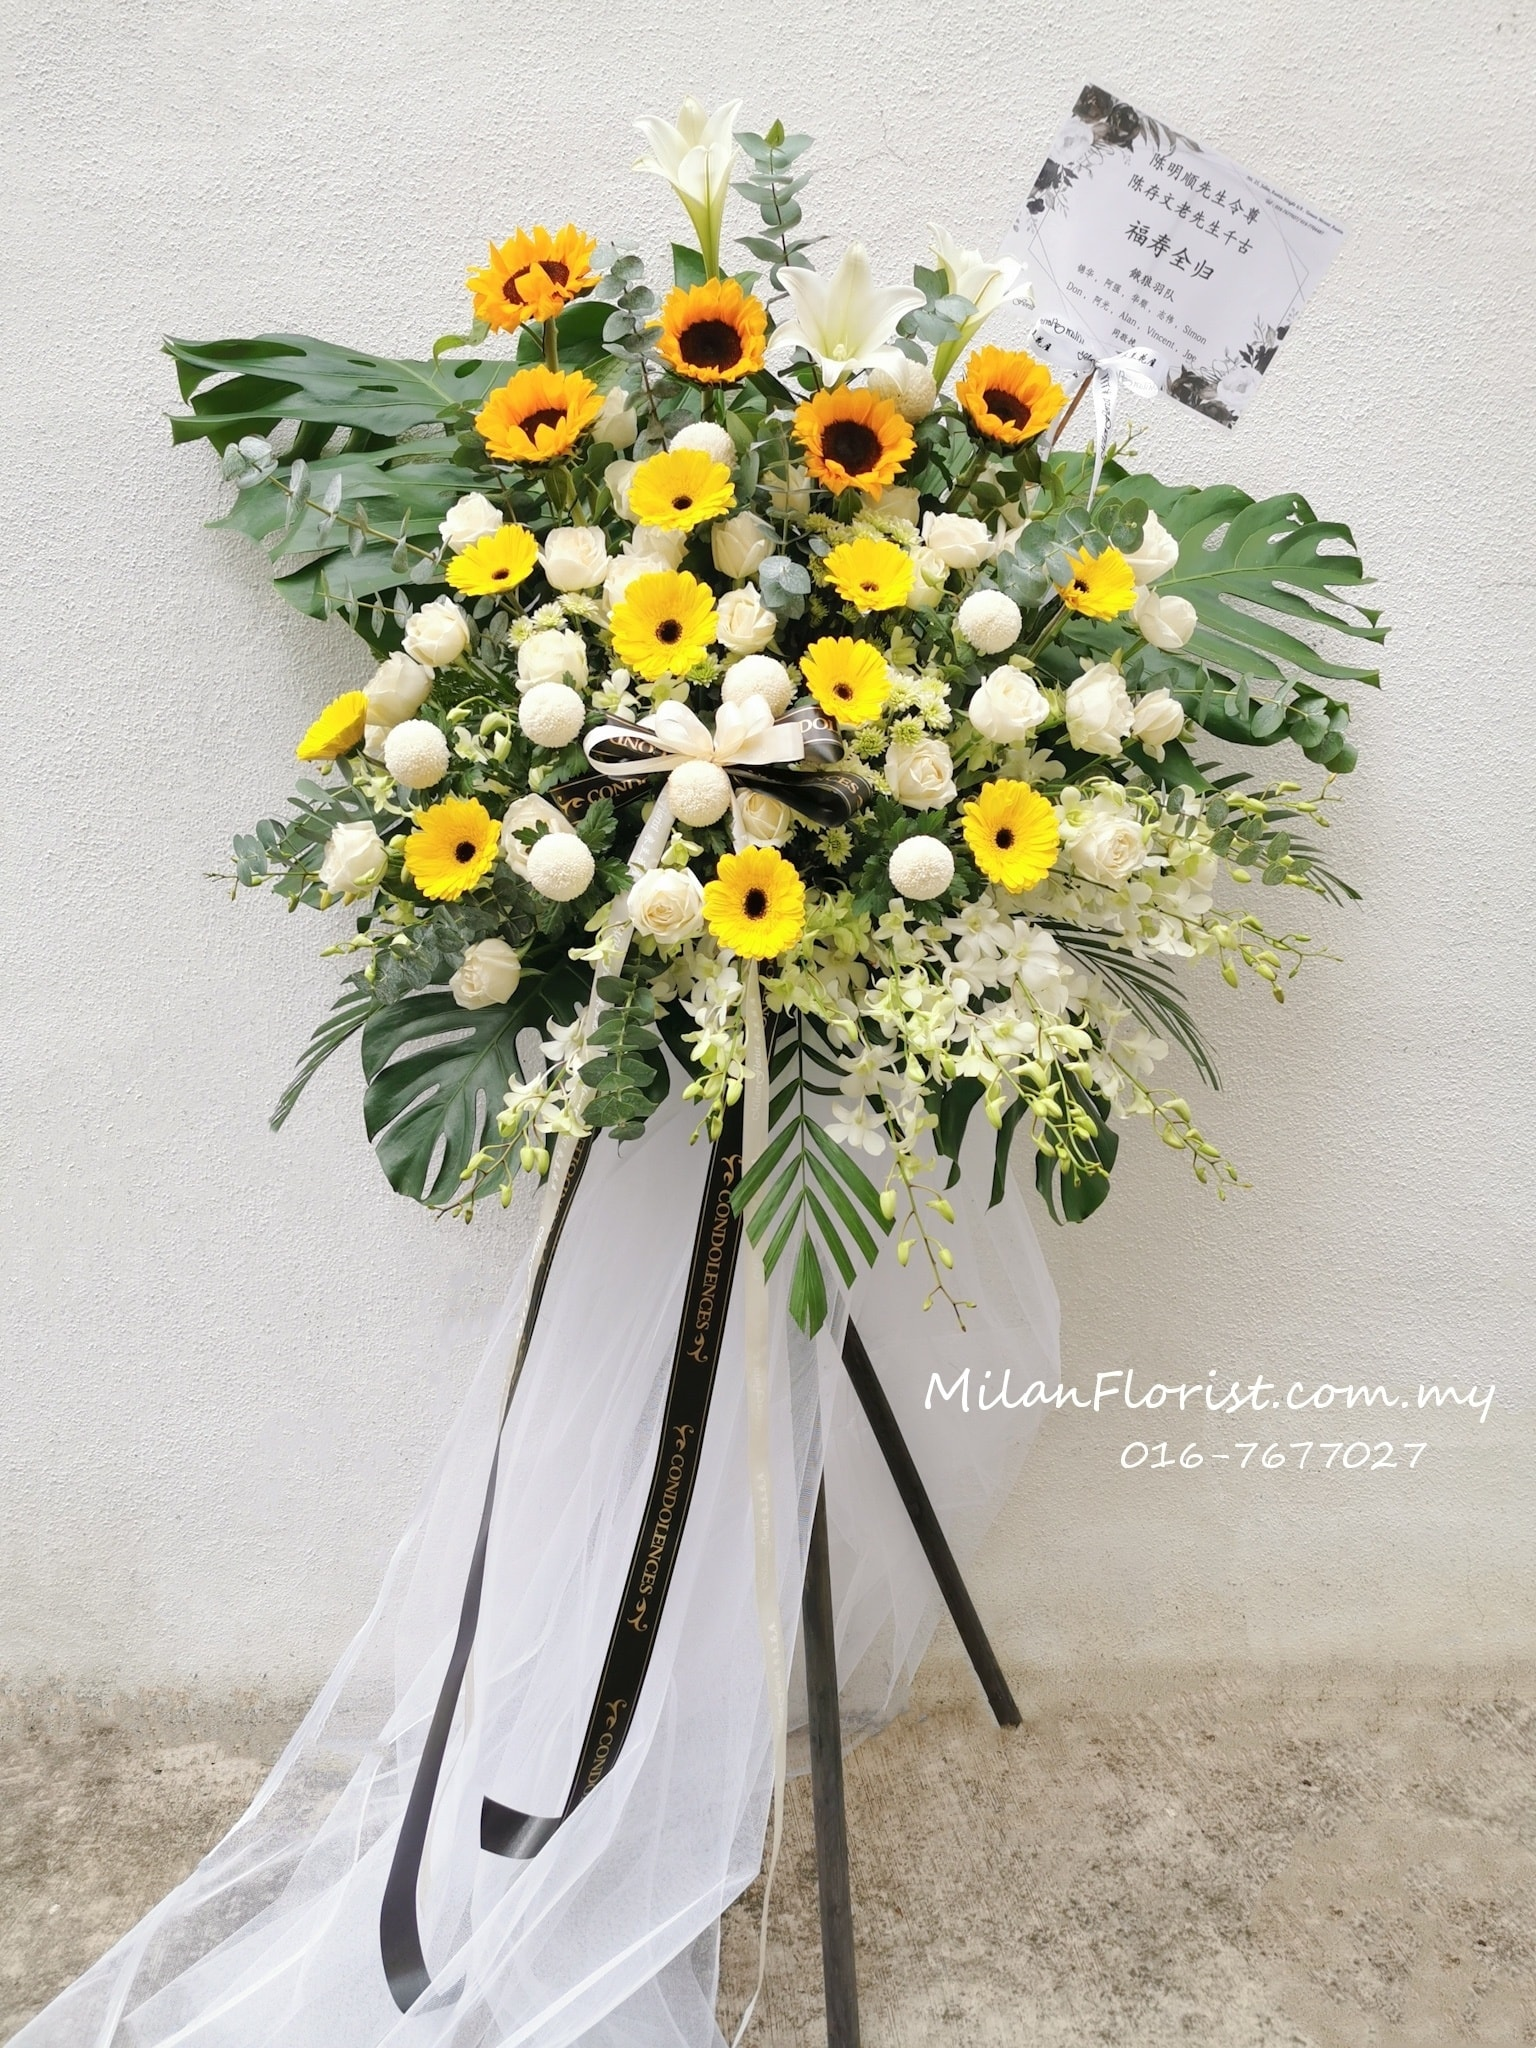 Funeral Condolences Wreath Floral Stand